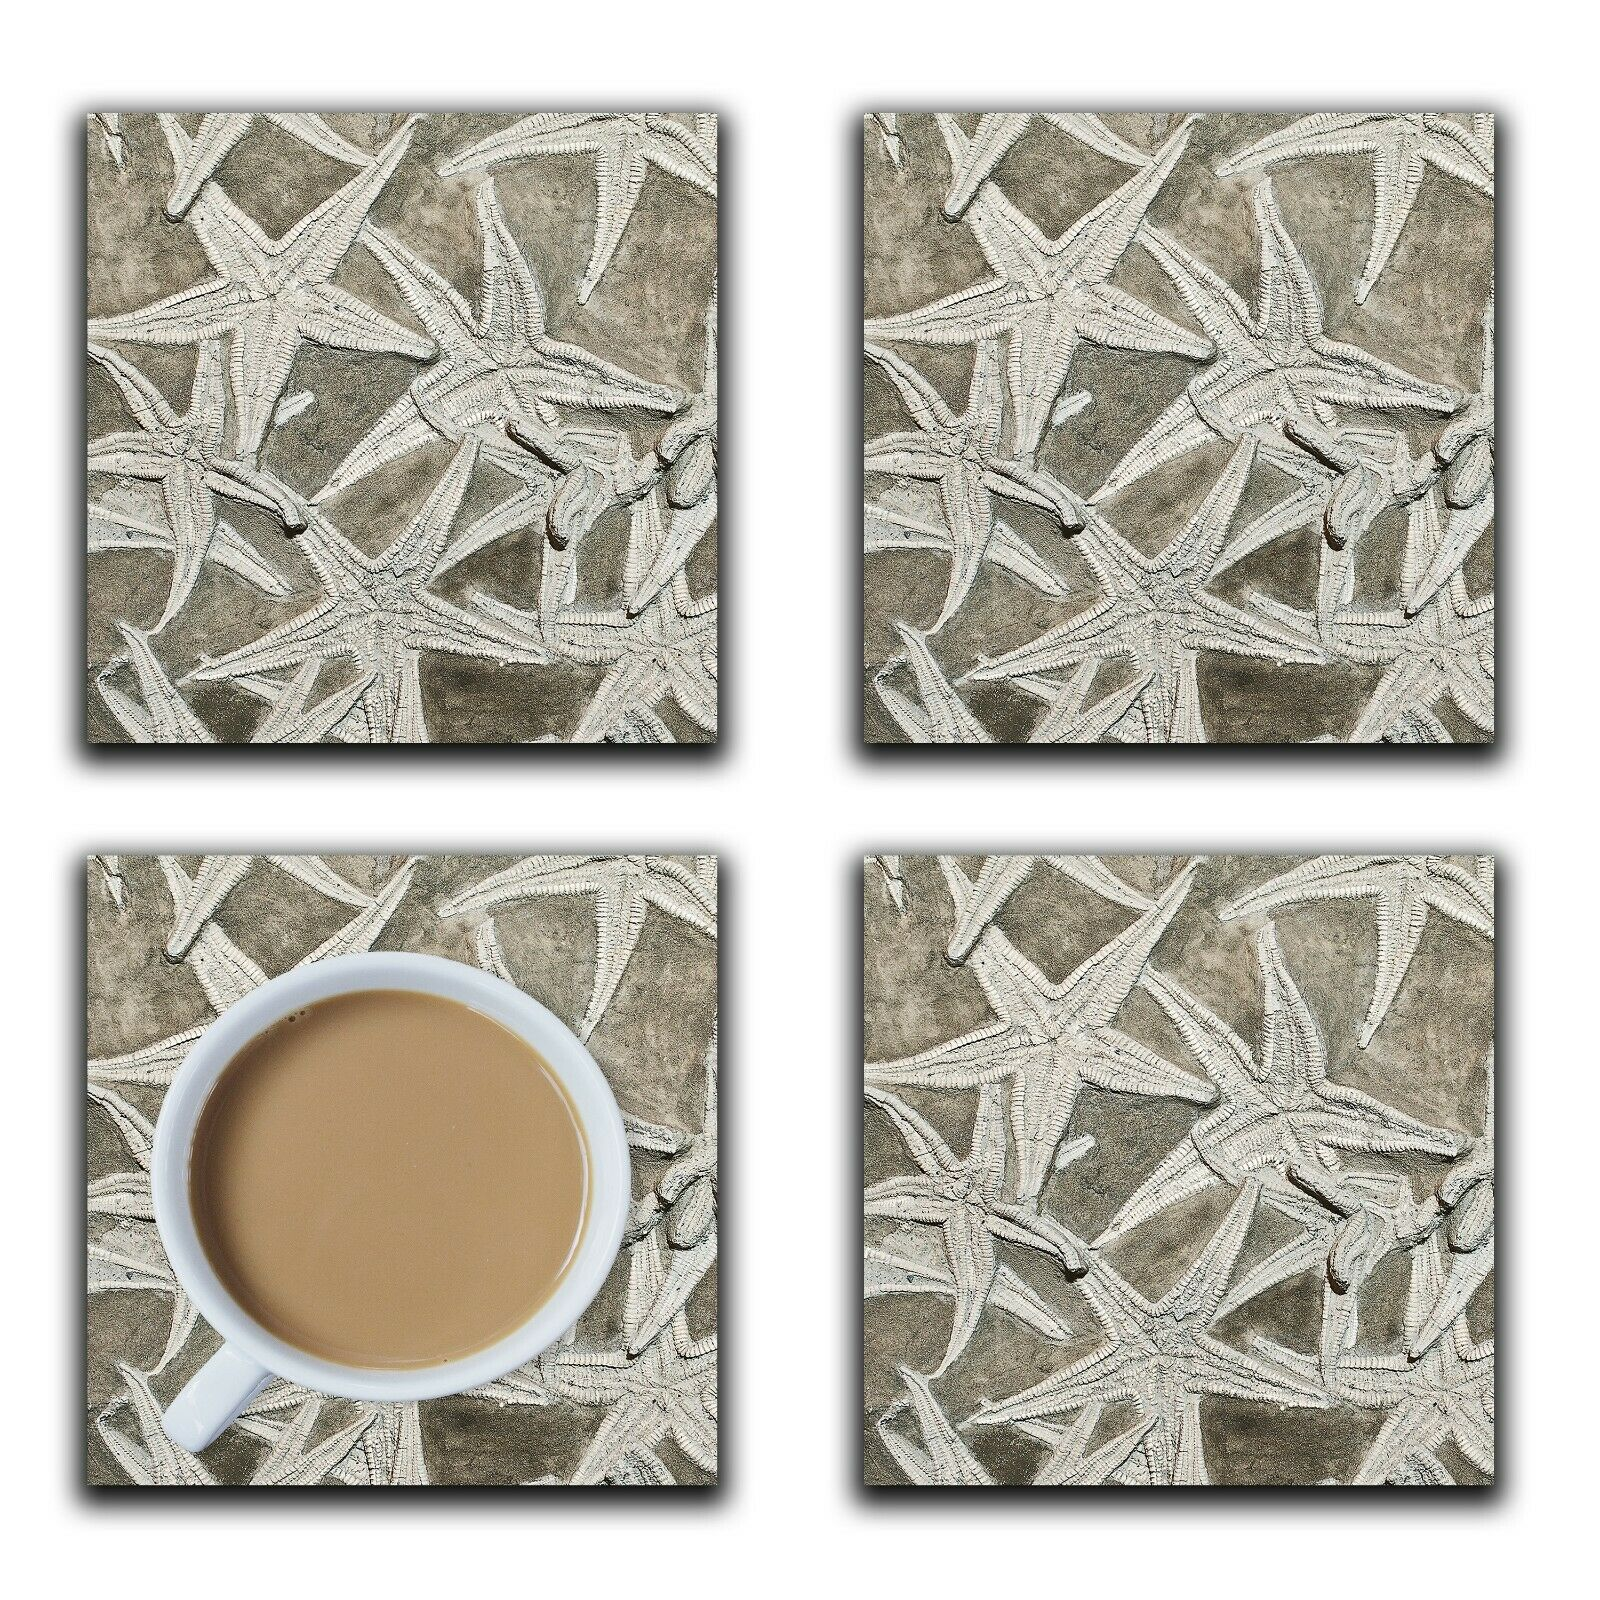 Embossi Printed Fossil Starfish, wood or ceramic tile, set of 4